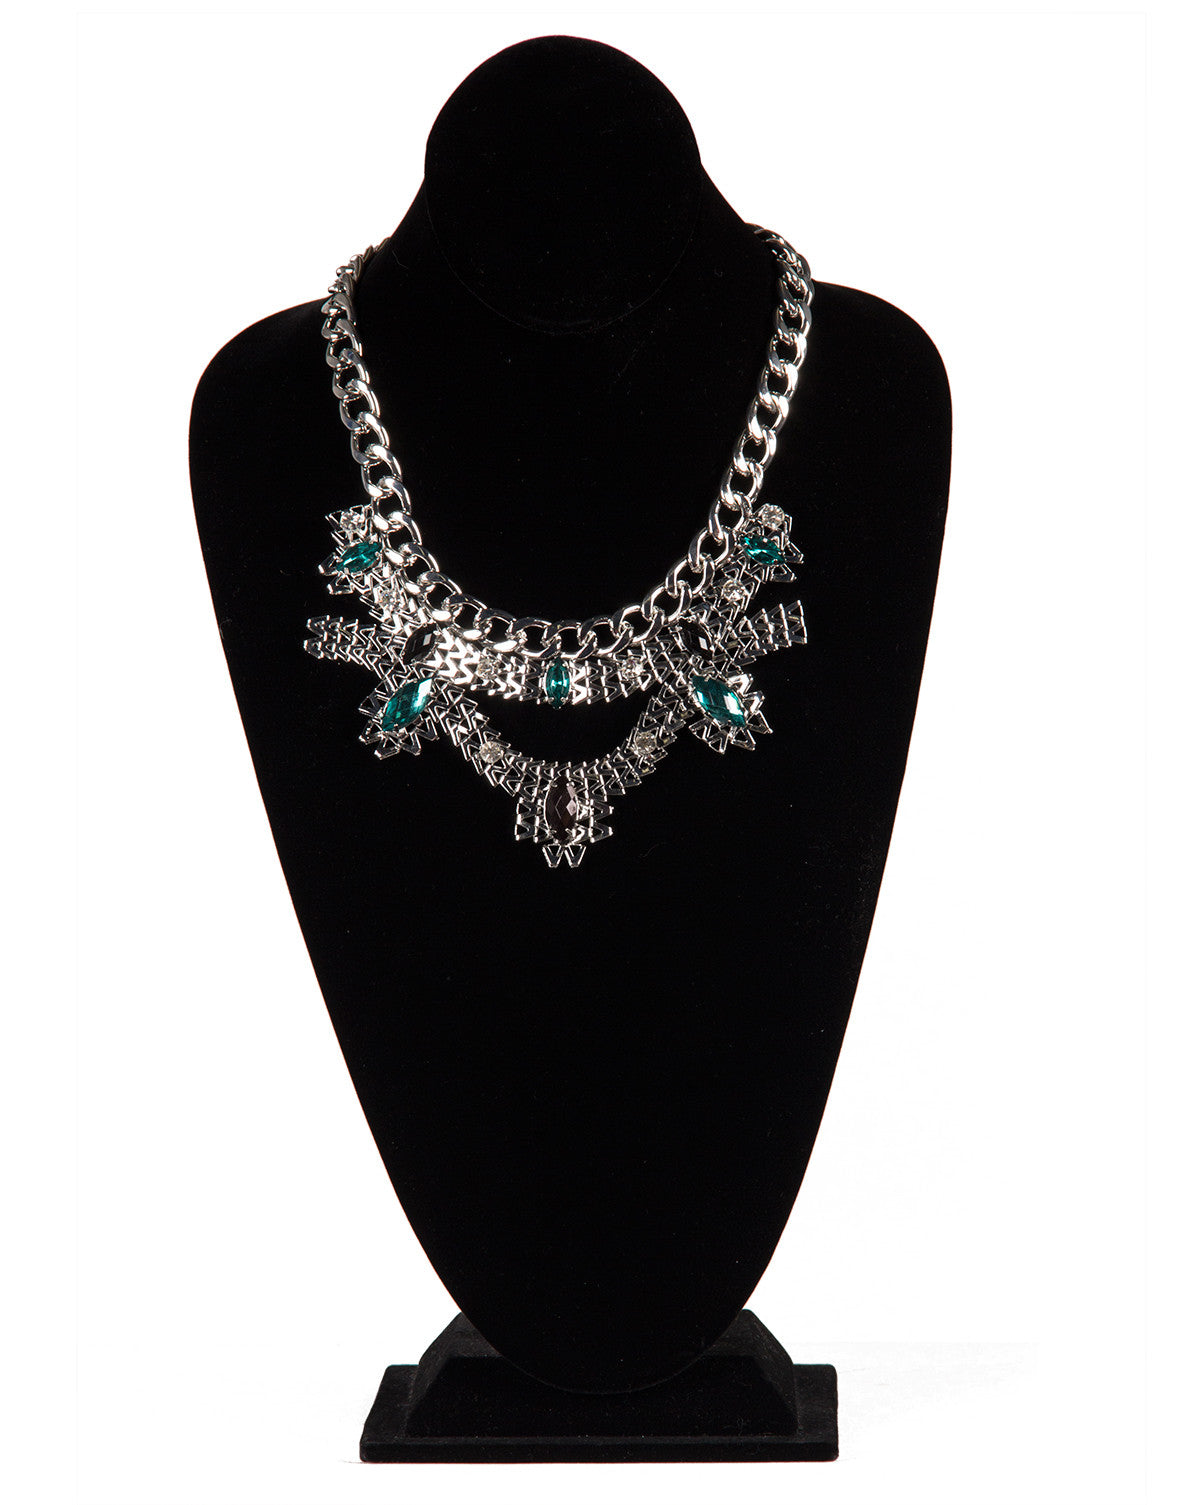 Snowflake Chain Necklace